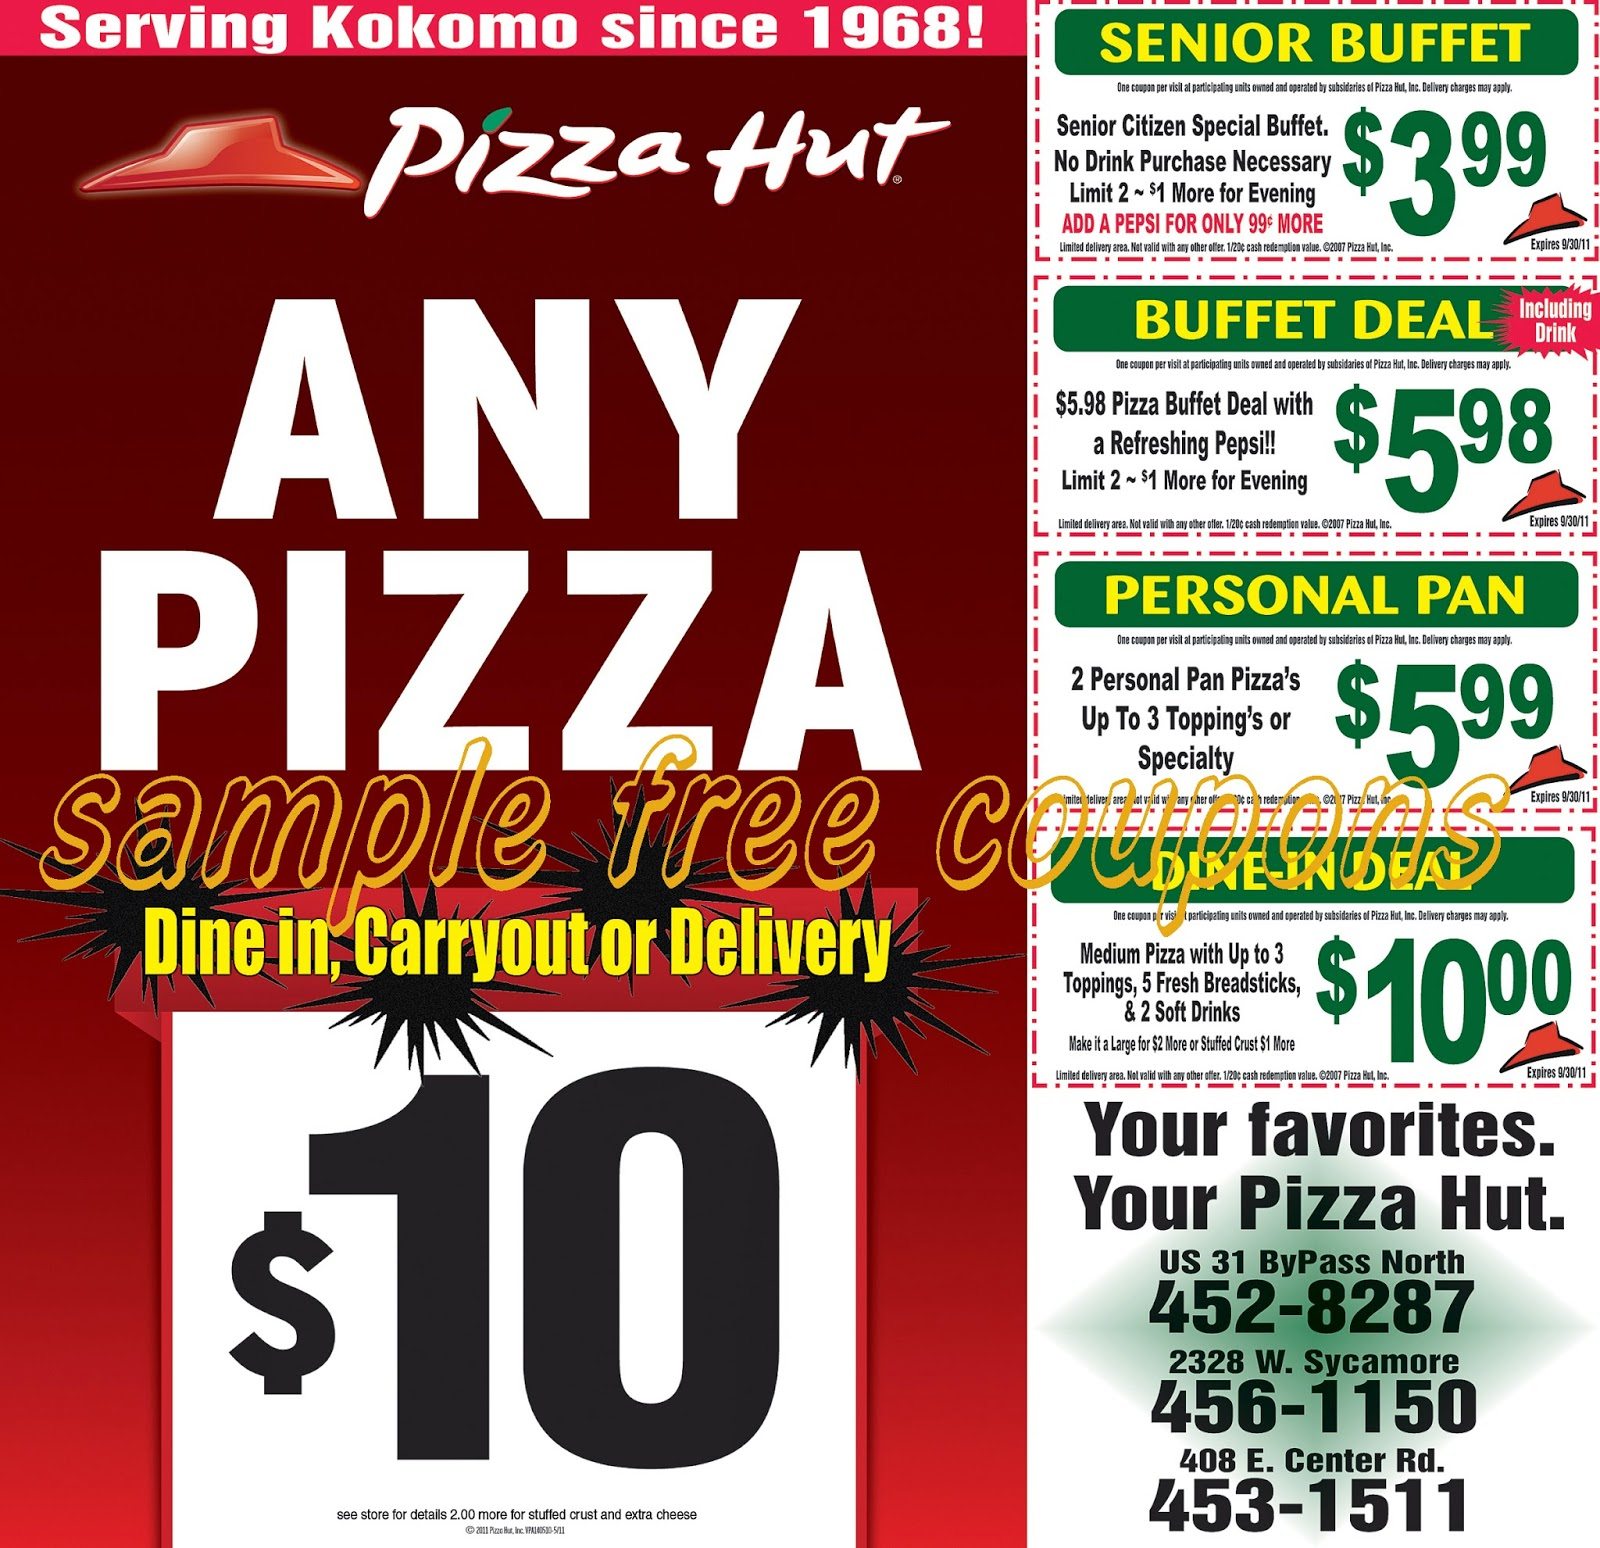 Pizza hut discount coupons